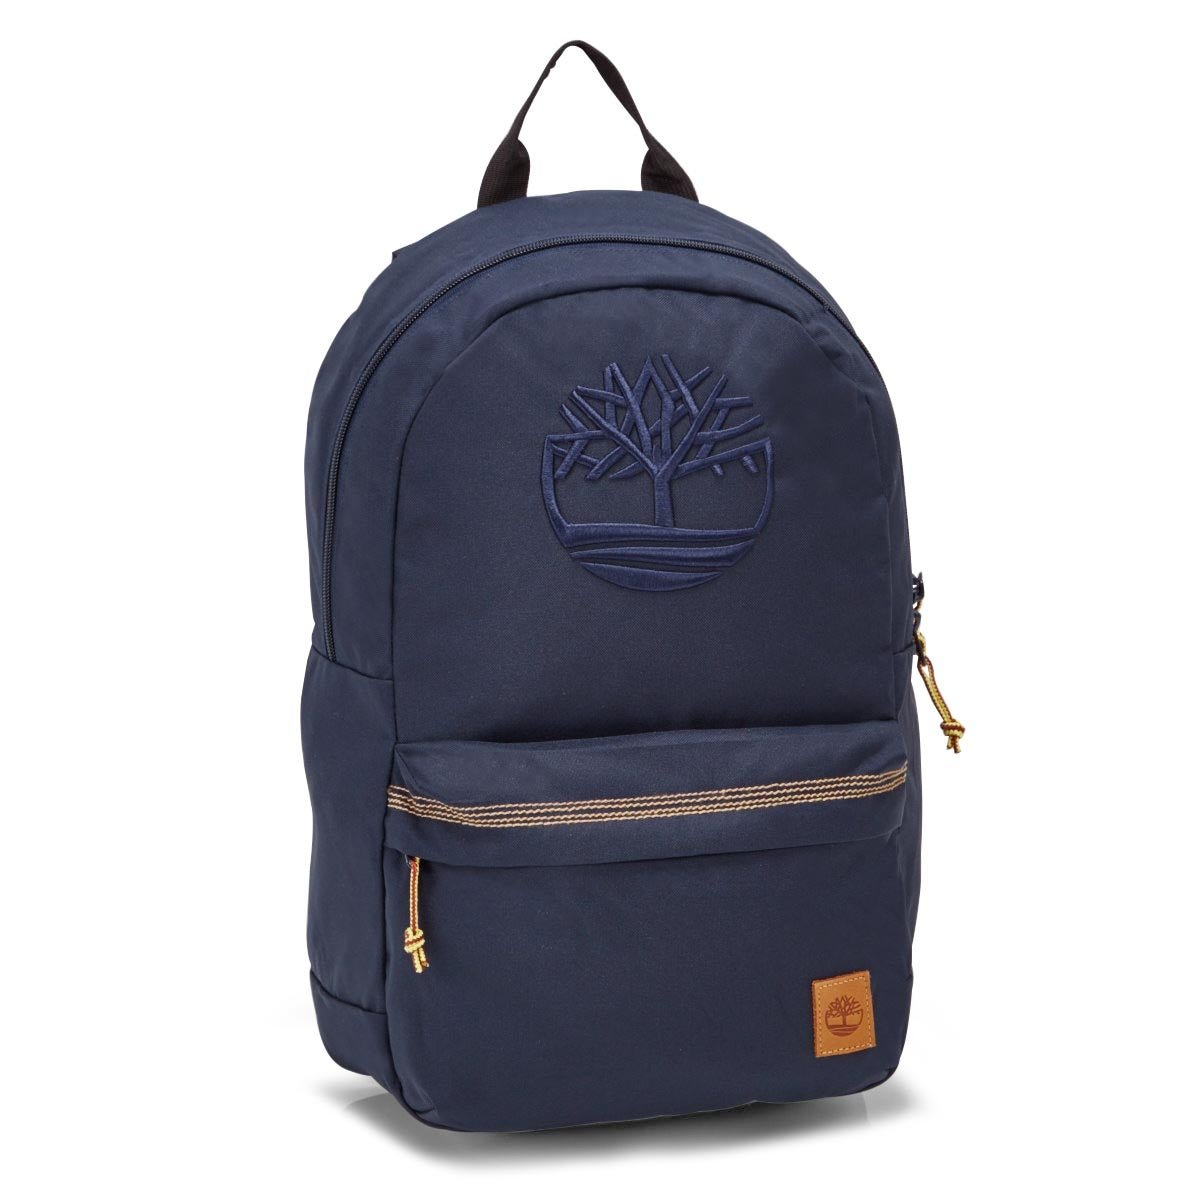 TIMBERLAND Mendum Pond 22l Nylon Backpack